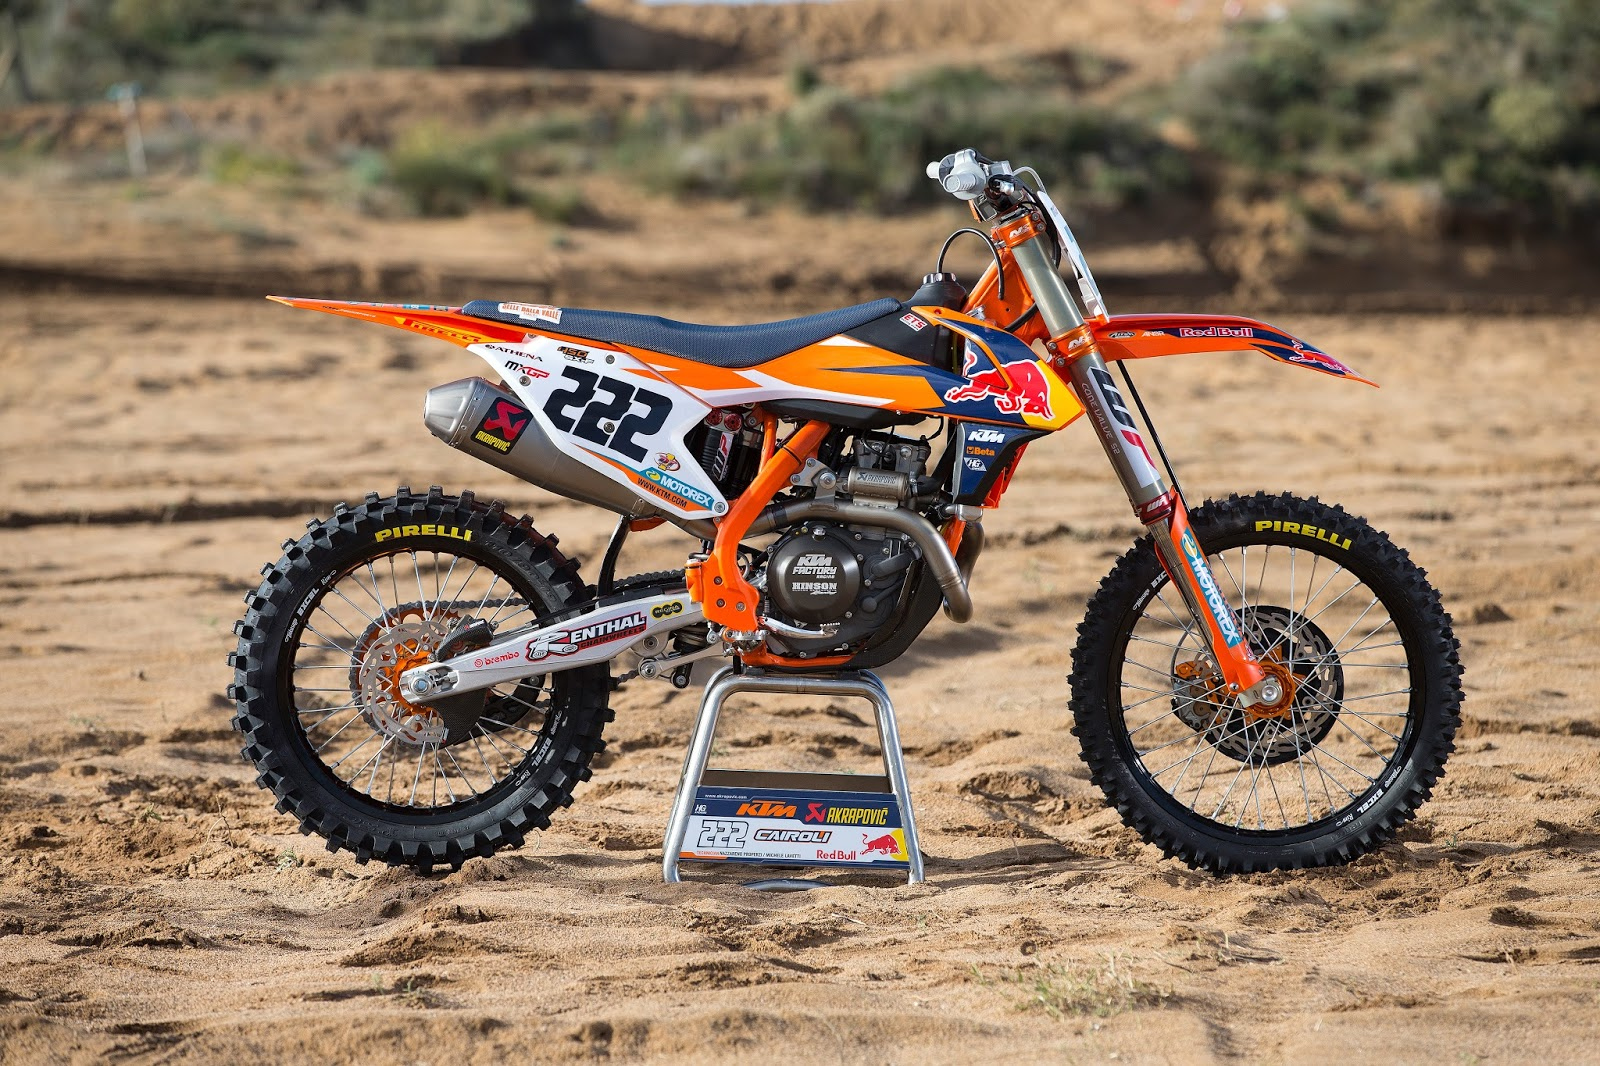 Racing Caf 232 Ktm Sx 450f Team Red Bull Ktm Factory Racing